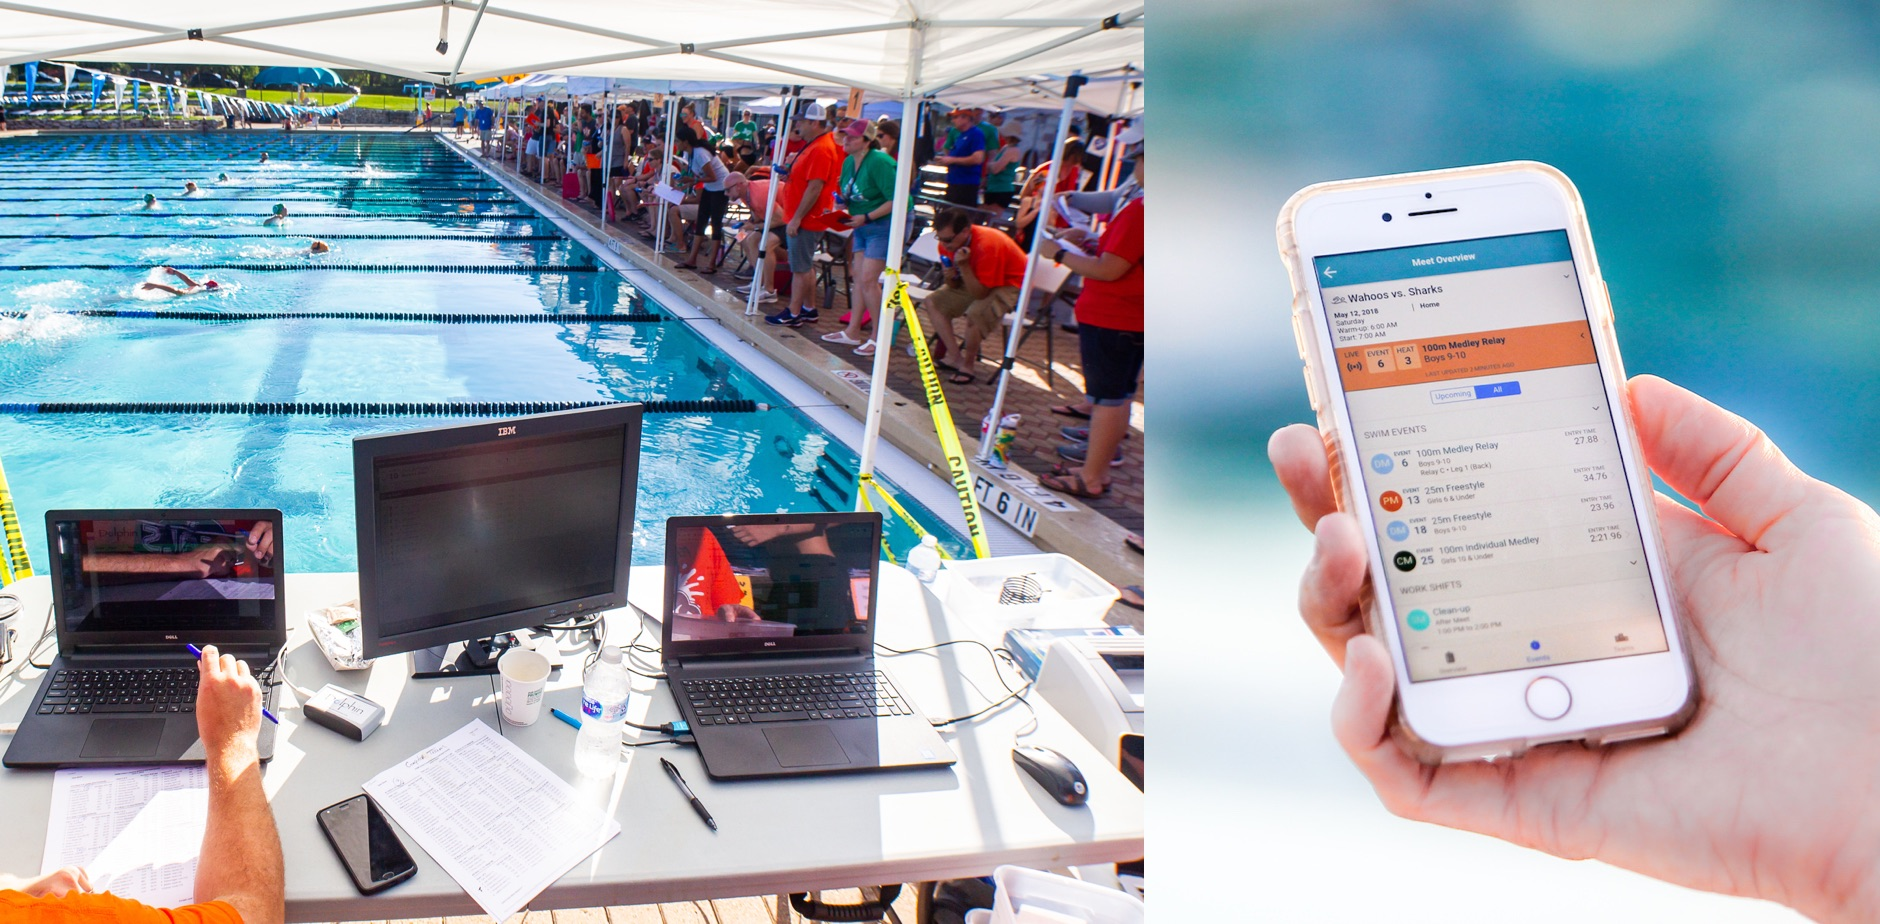 Two photos, of a swim meet with laptops, and a phone showing results from a swim meet